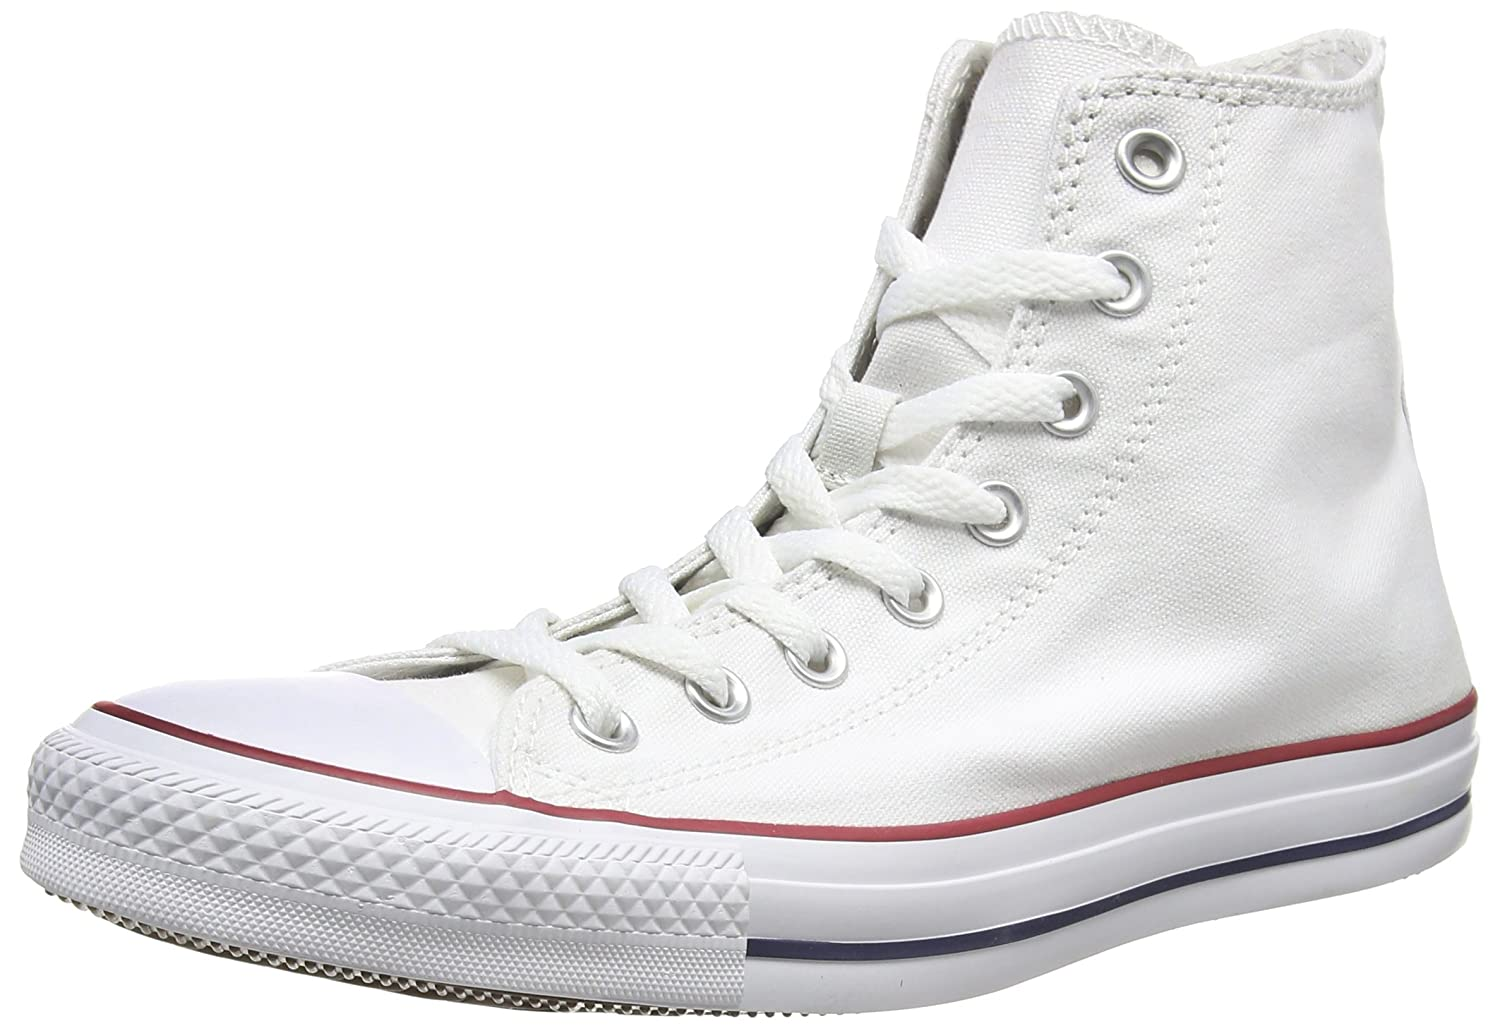 Converse Chuck Taylor All Star Core Hi B00GXAKXYY 8.5 D(M) US |Unbleached White